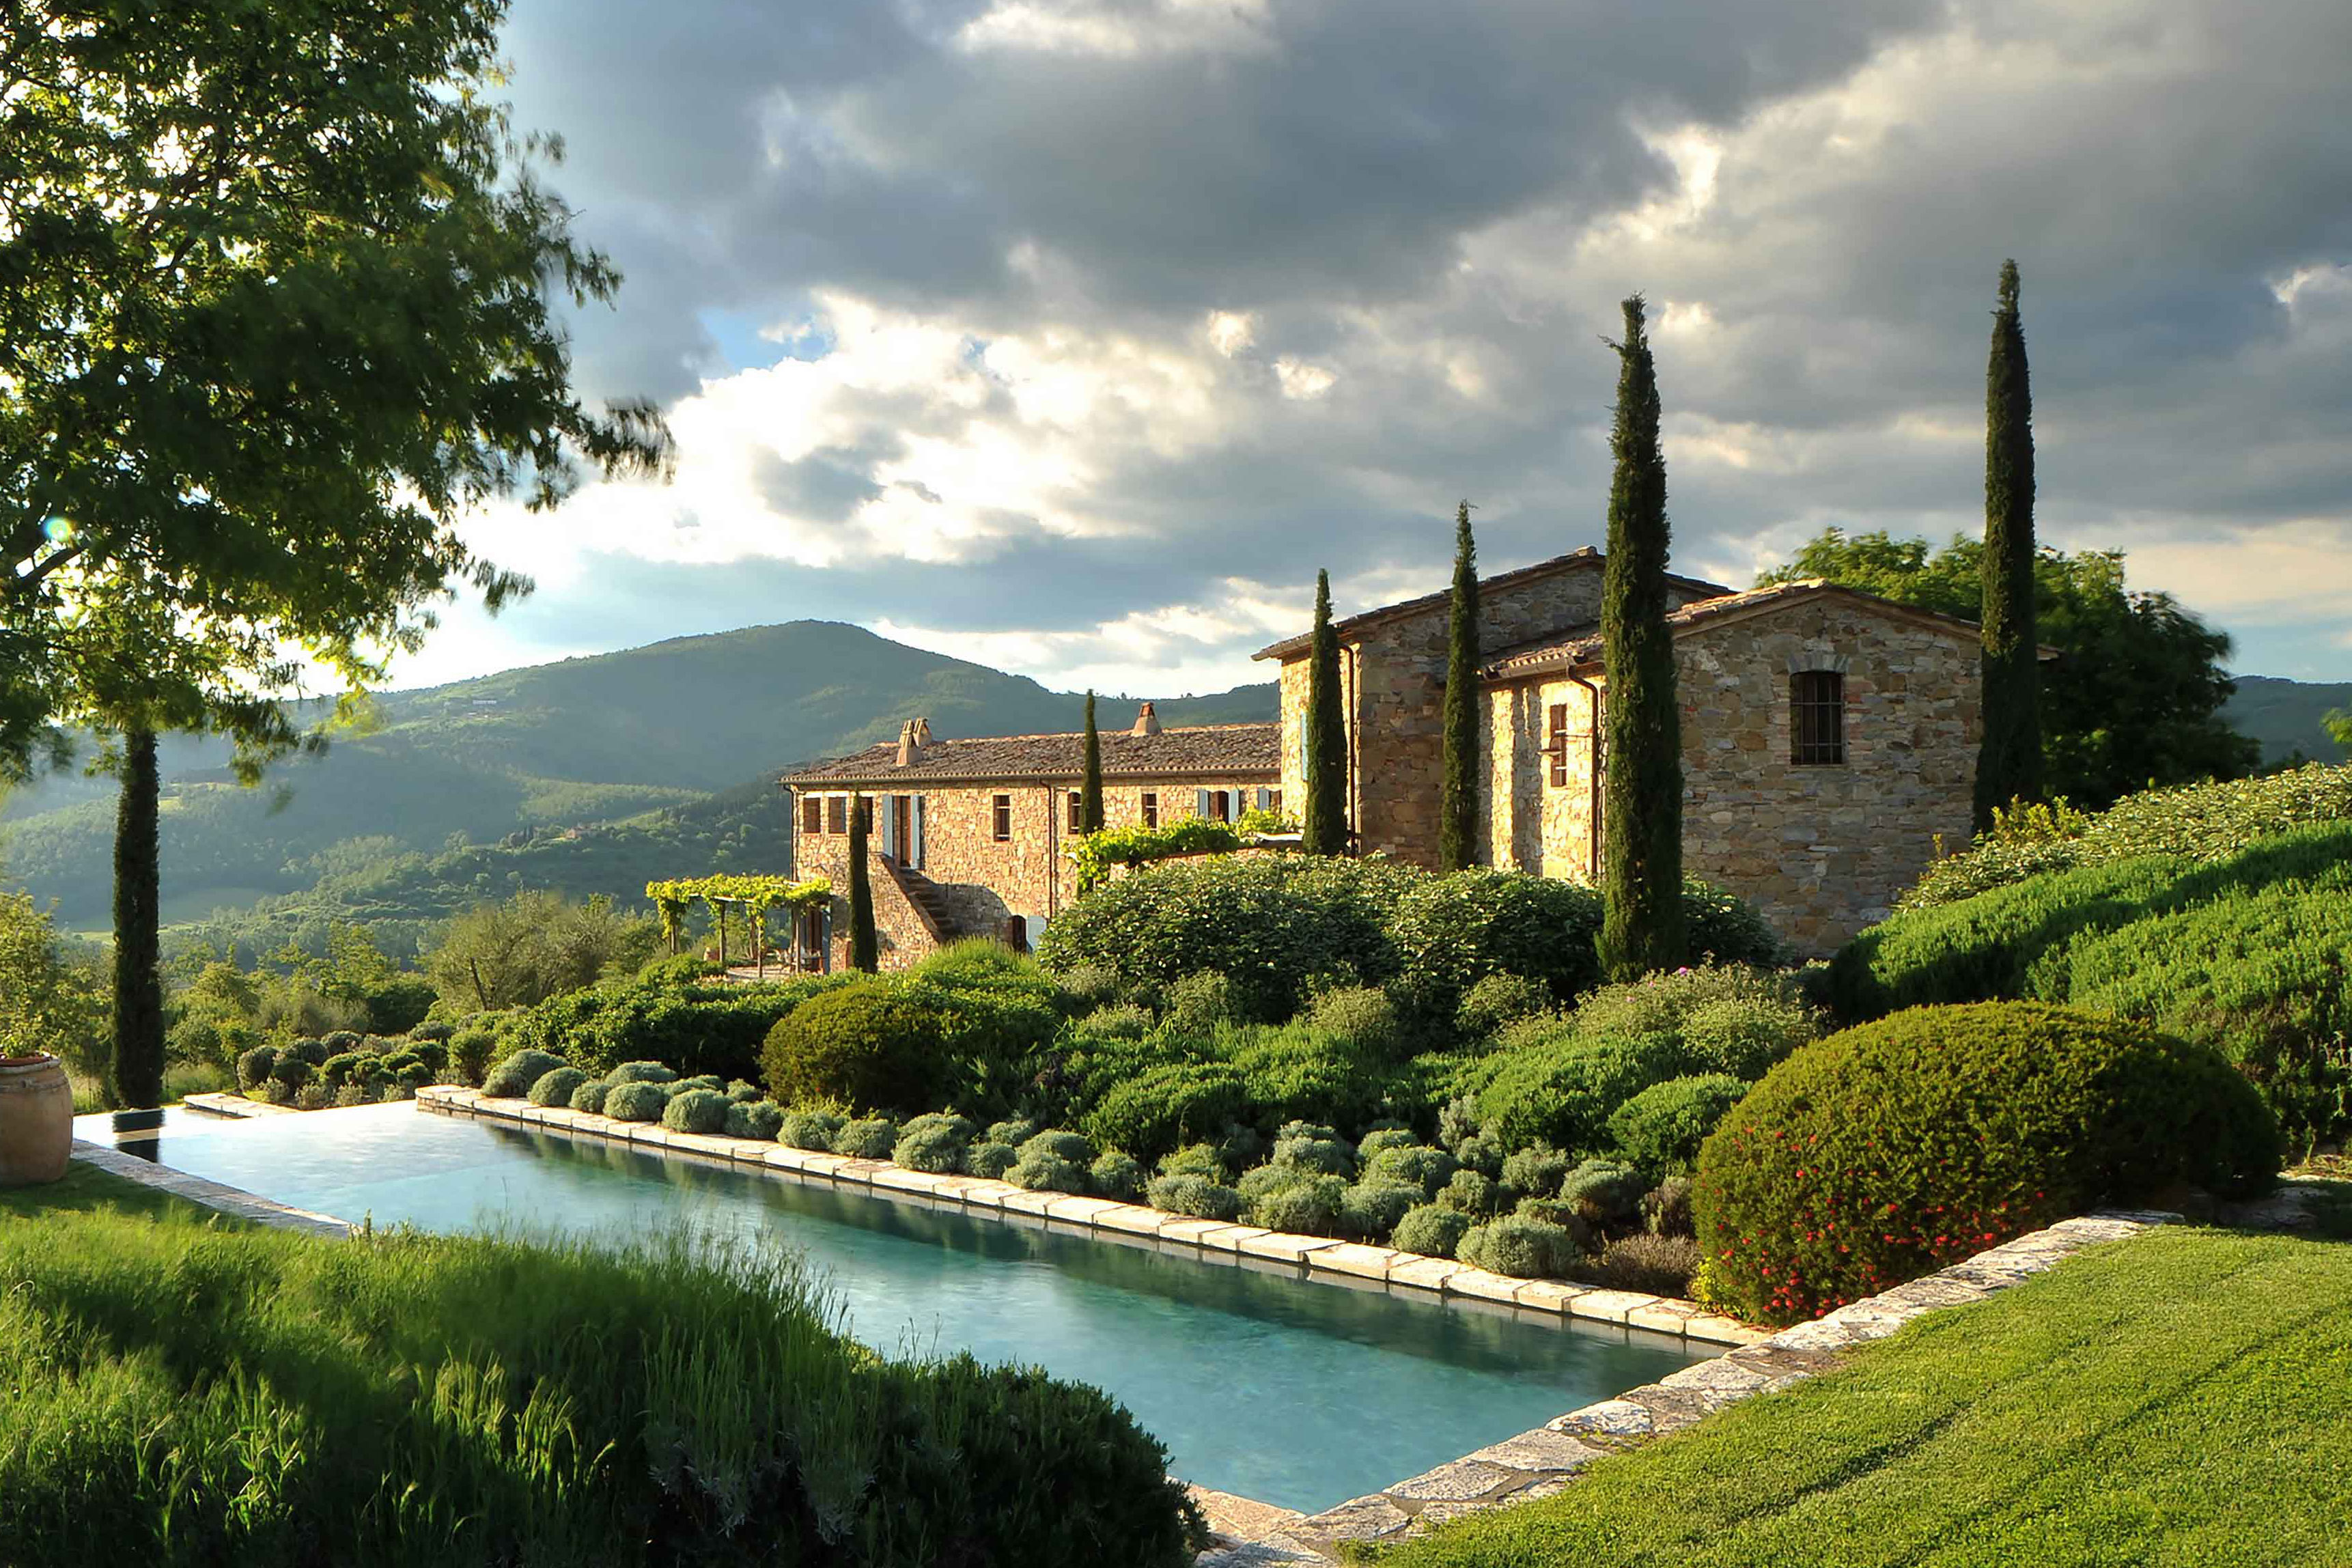 Luxury villas for family holidays | Castello di Reschio, Umbria | Mr & Mrs Smith Editorial